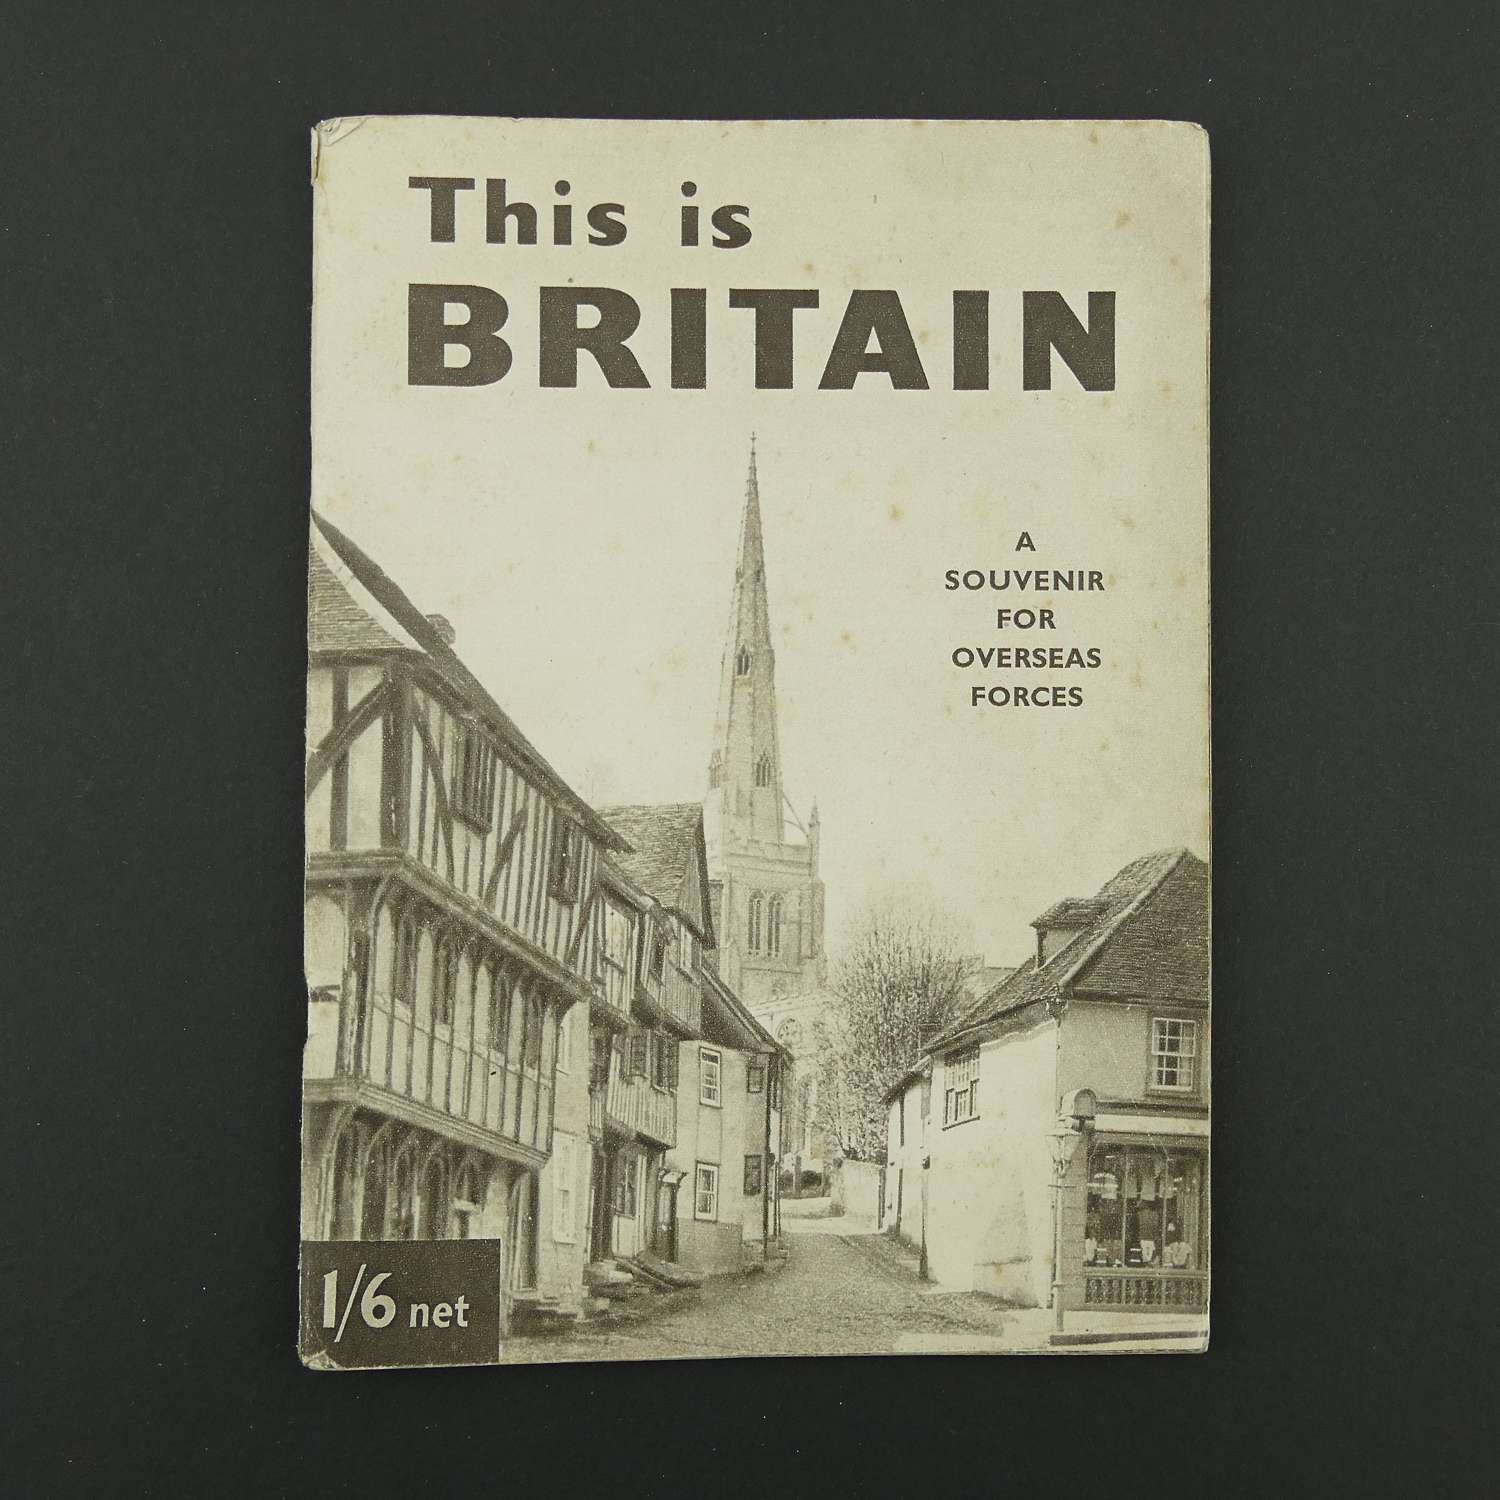 This is Britain - A Souvenir For Overseas Forces